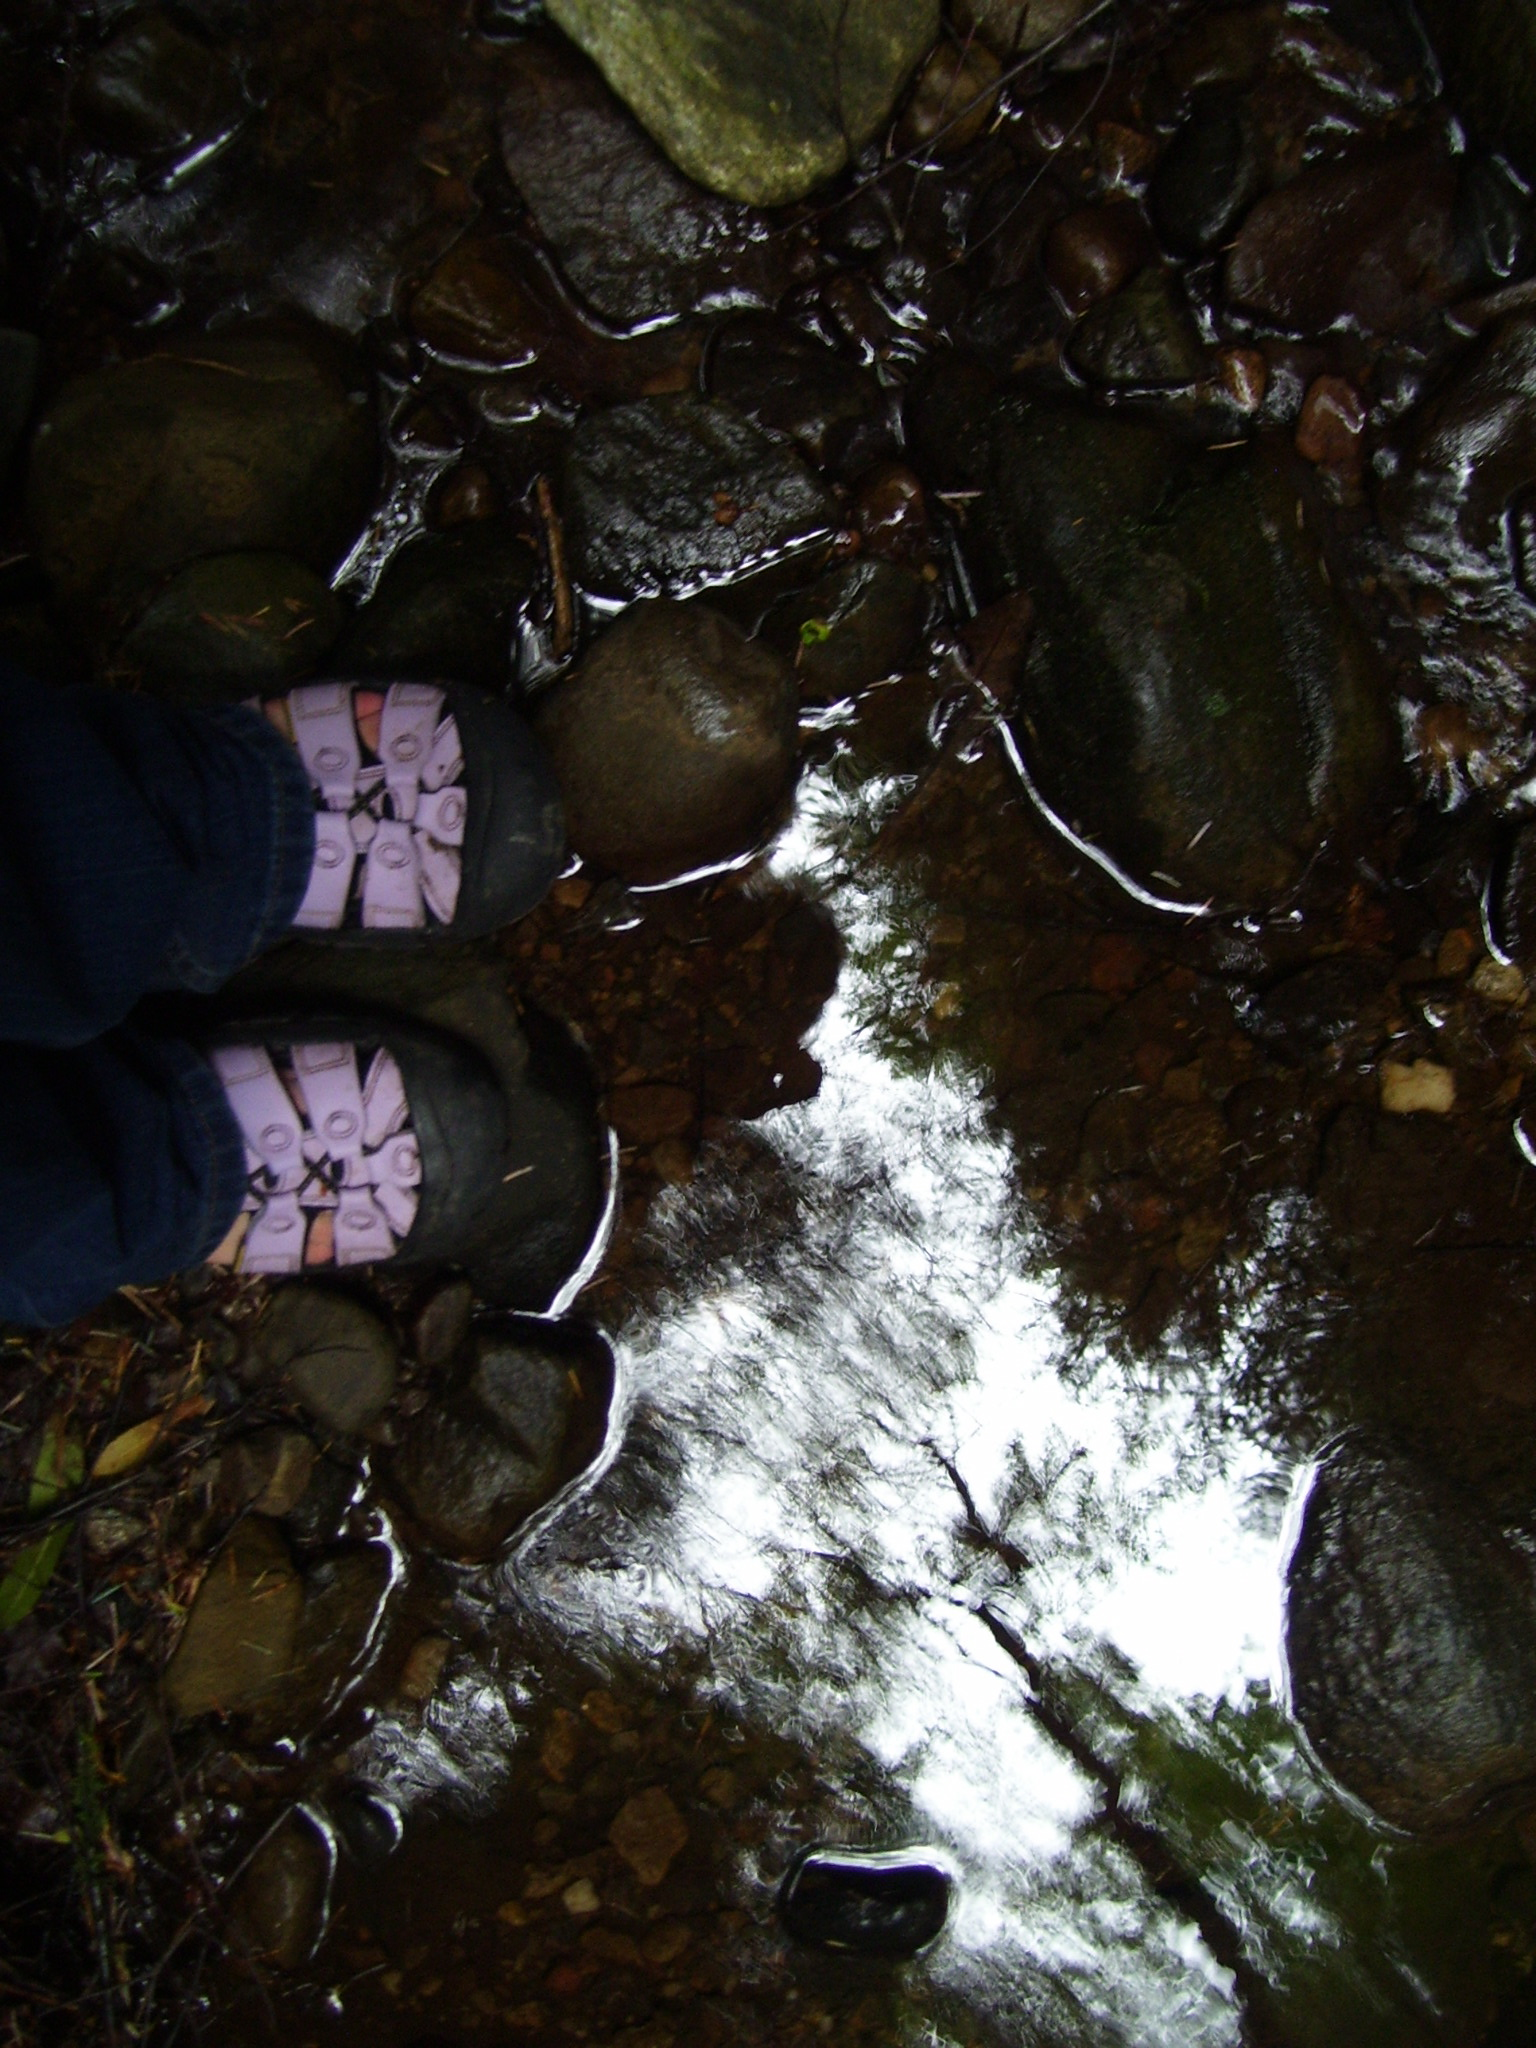 My purple-clad toes in a Narnia-esque forest